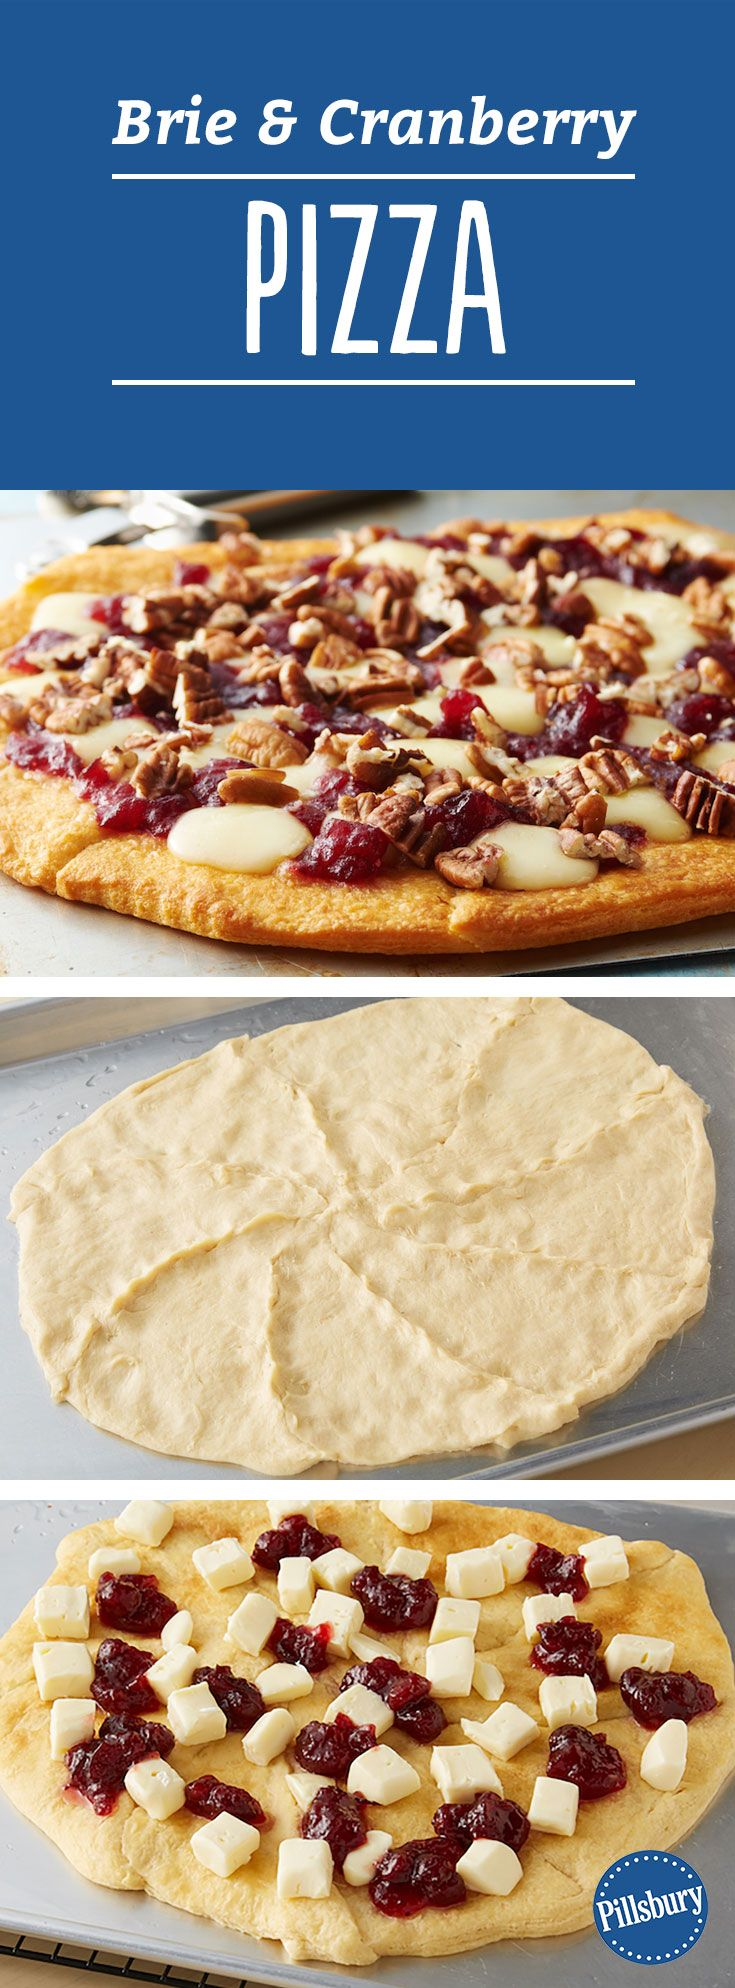 Brie And Cranberry Pizza Recipe — Dishmaps